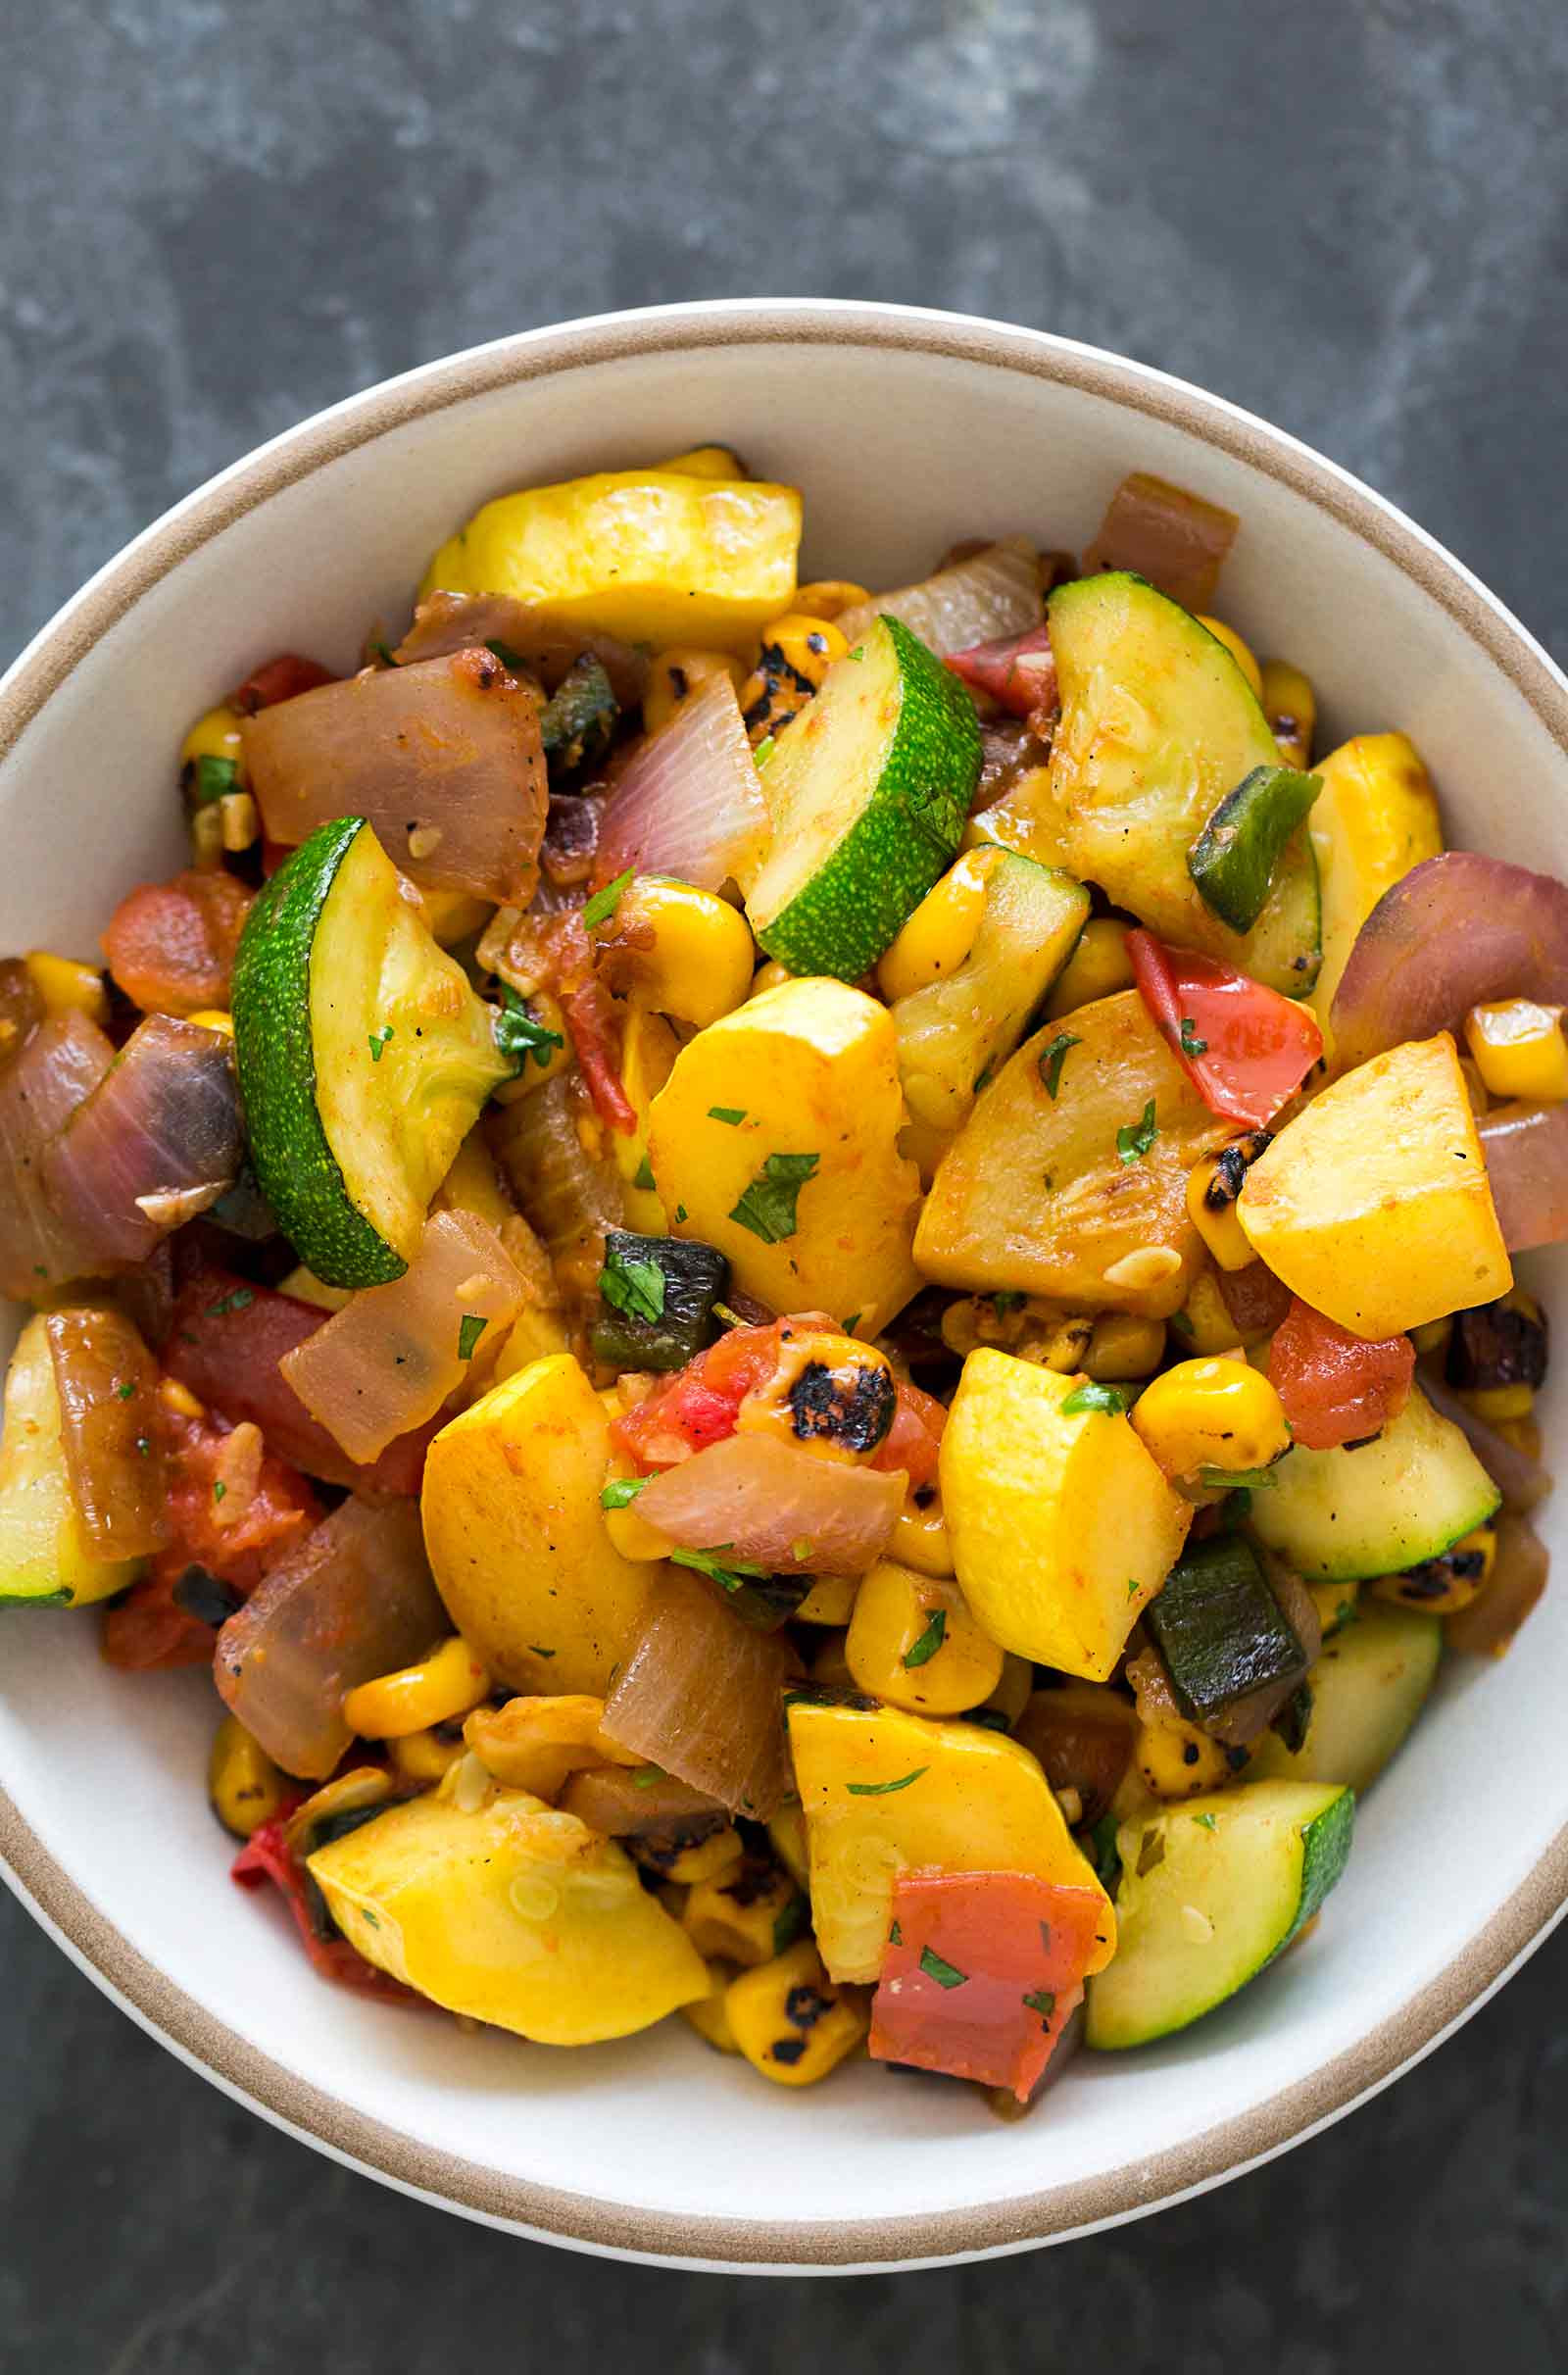 Vegan Summer Squash Recipes  Summer Squash Green Chile Stir Fry Recipe